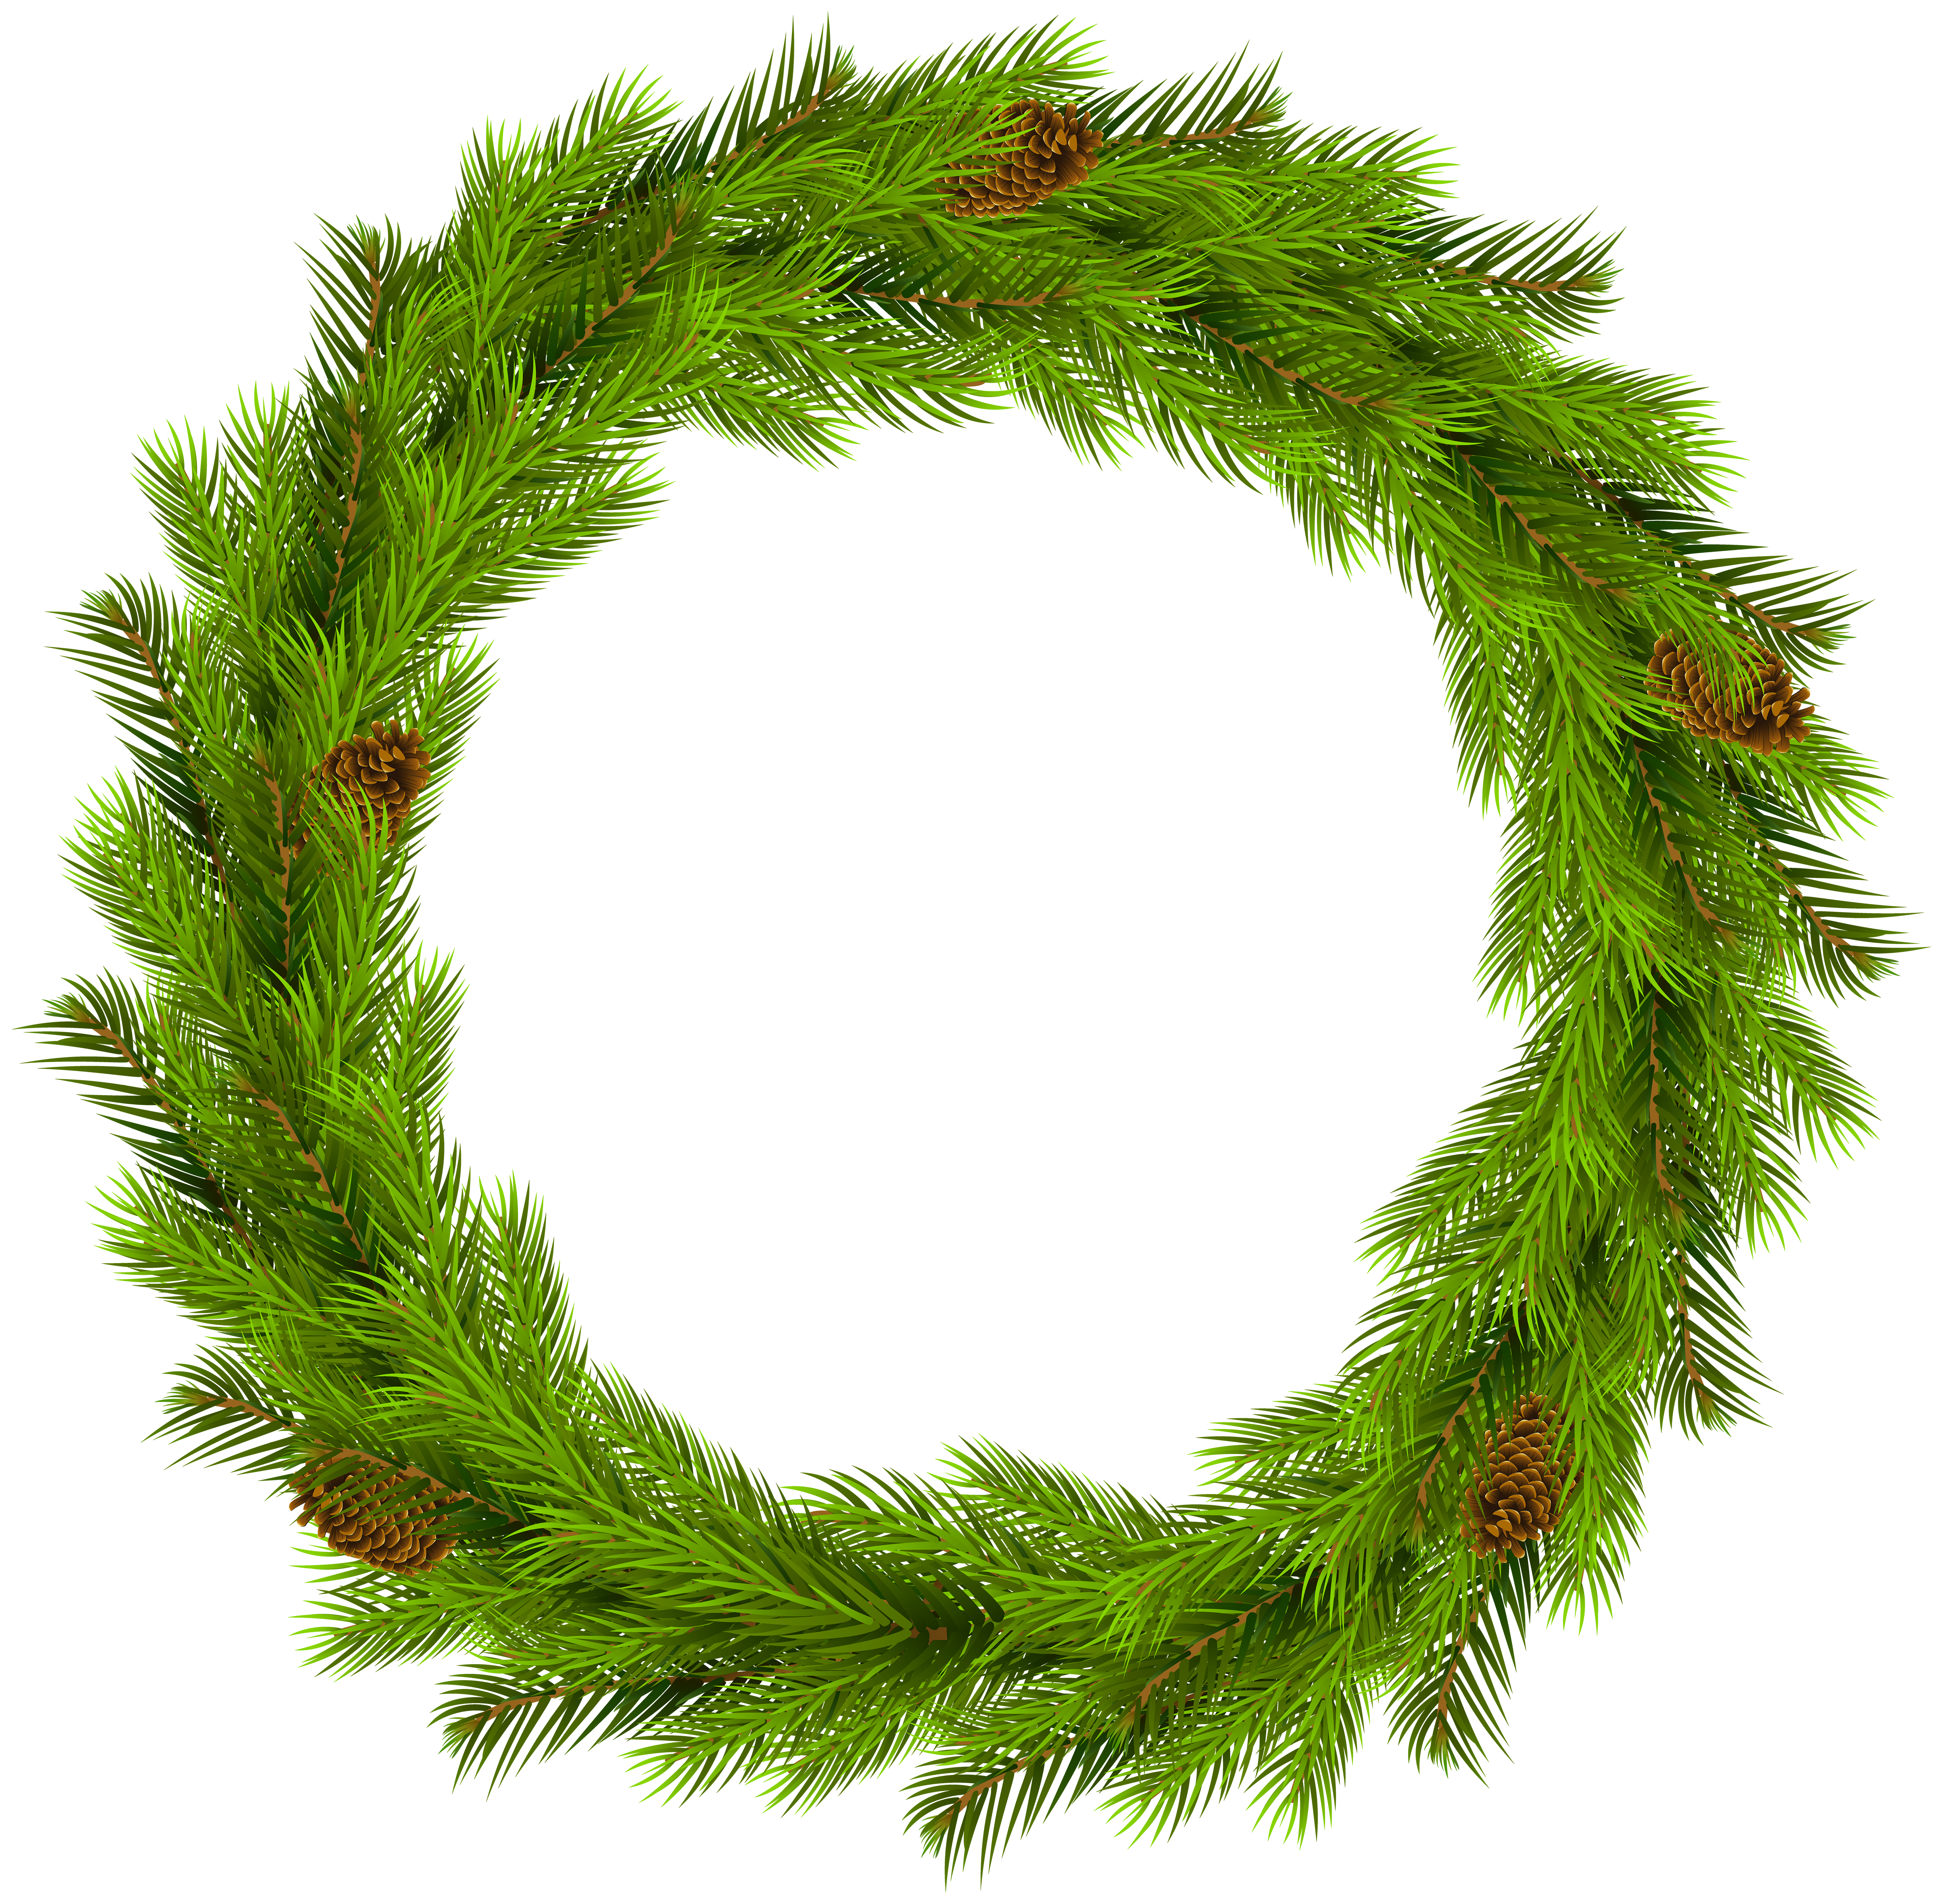 Flower wreath clipart free vector freeuse download Christmas Wreath Clipart at GetDrawings.com | Free for personal use ... vector freeuse download